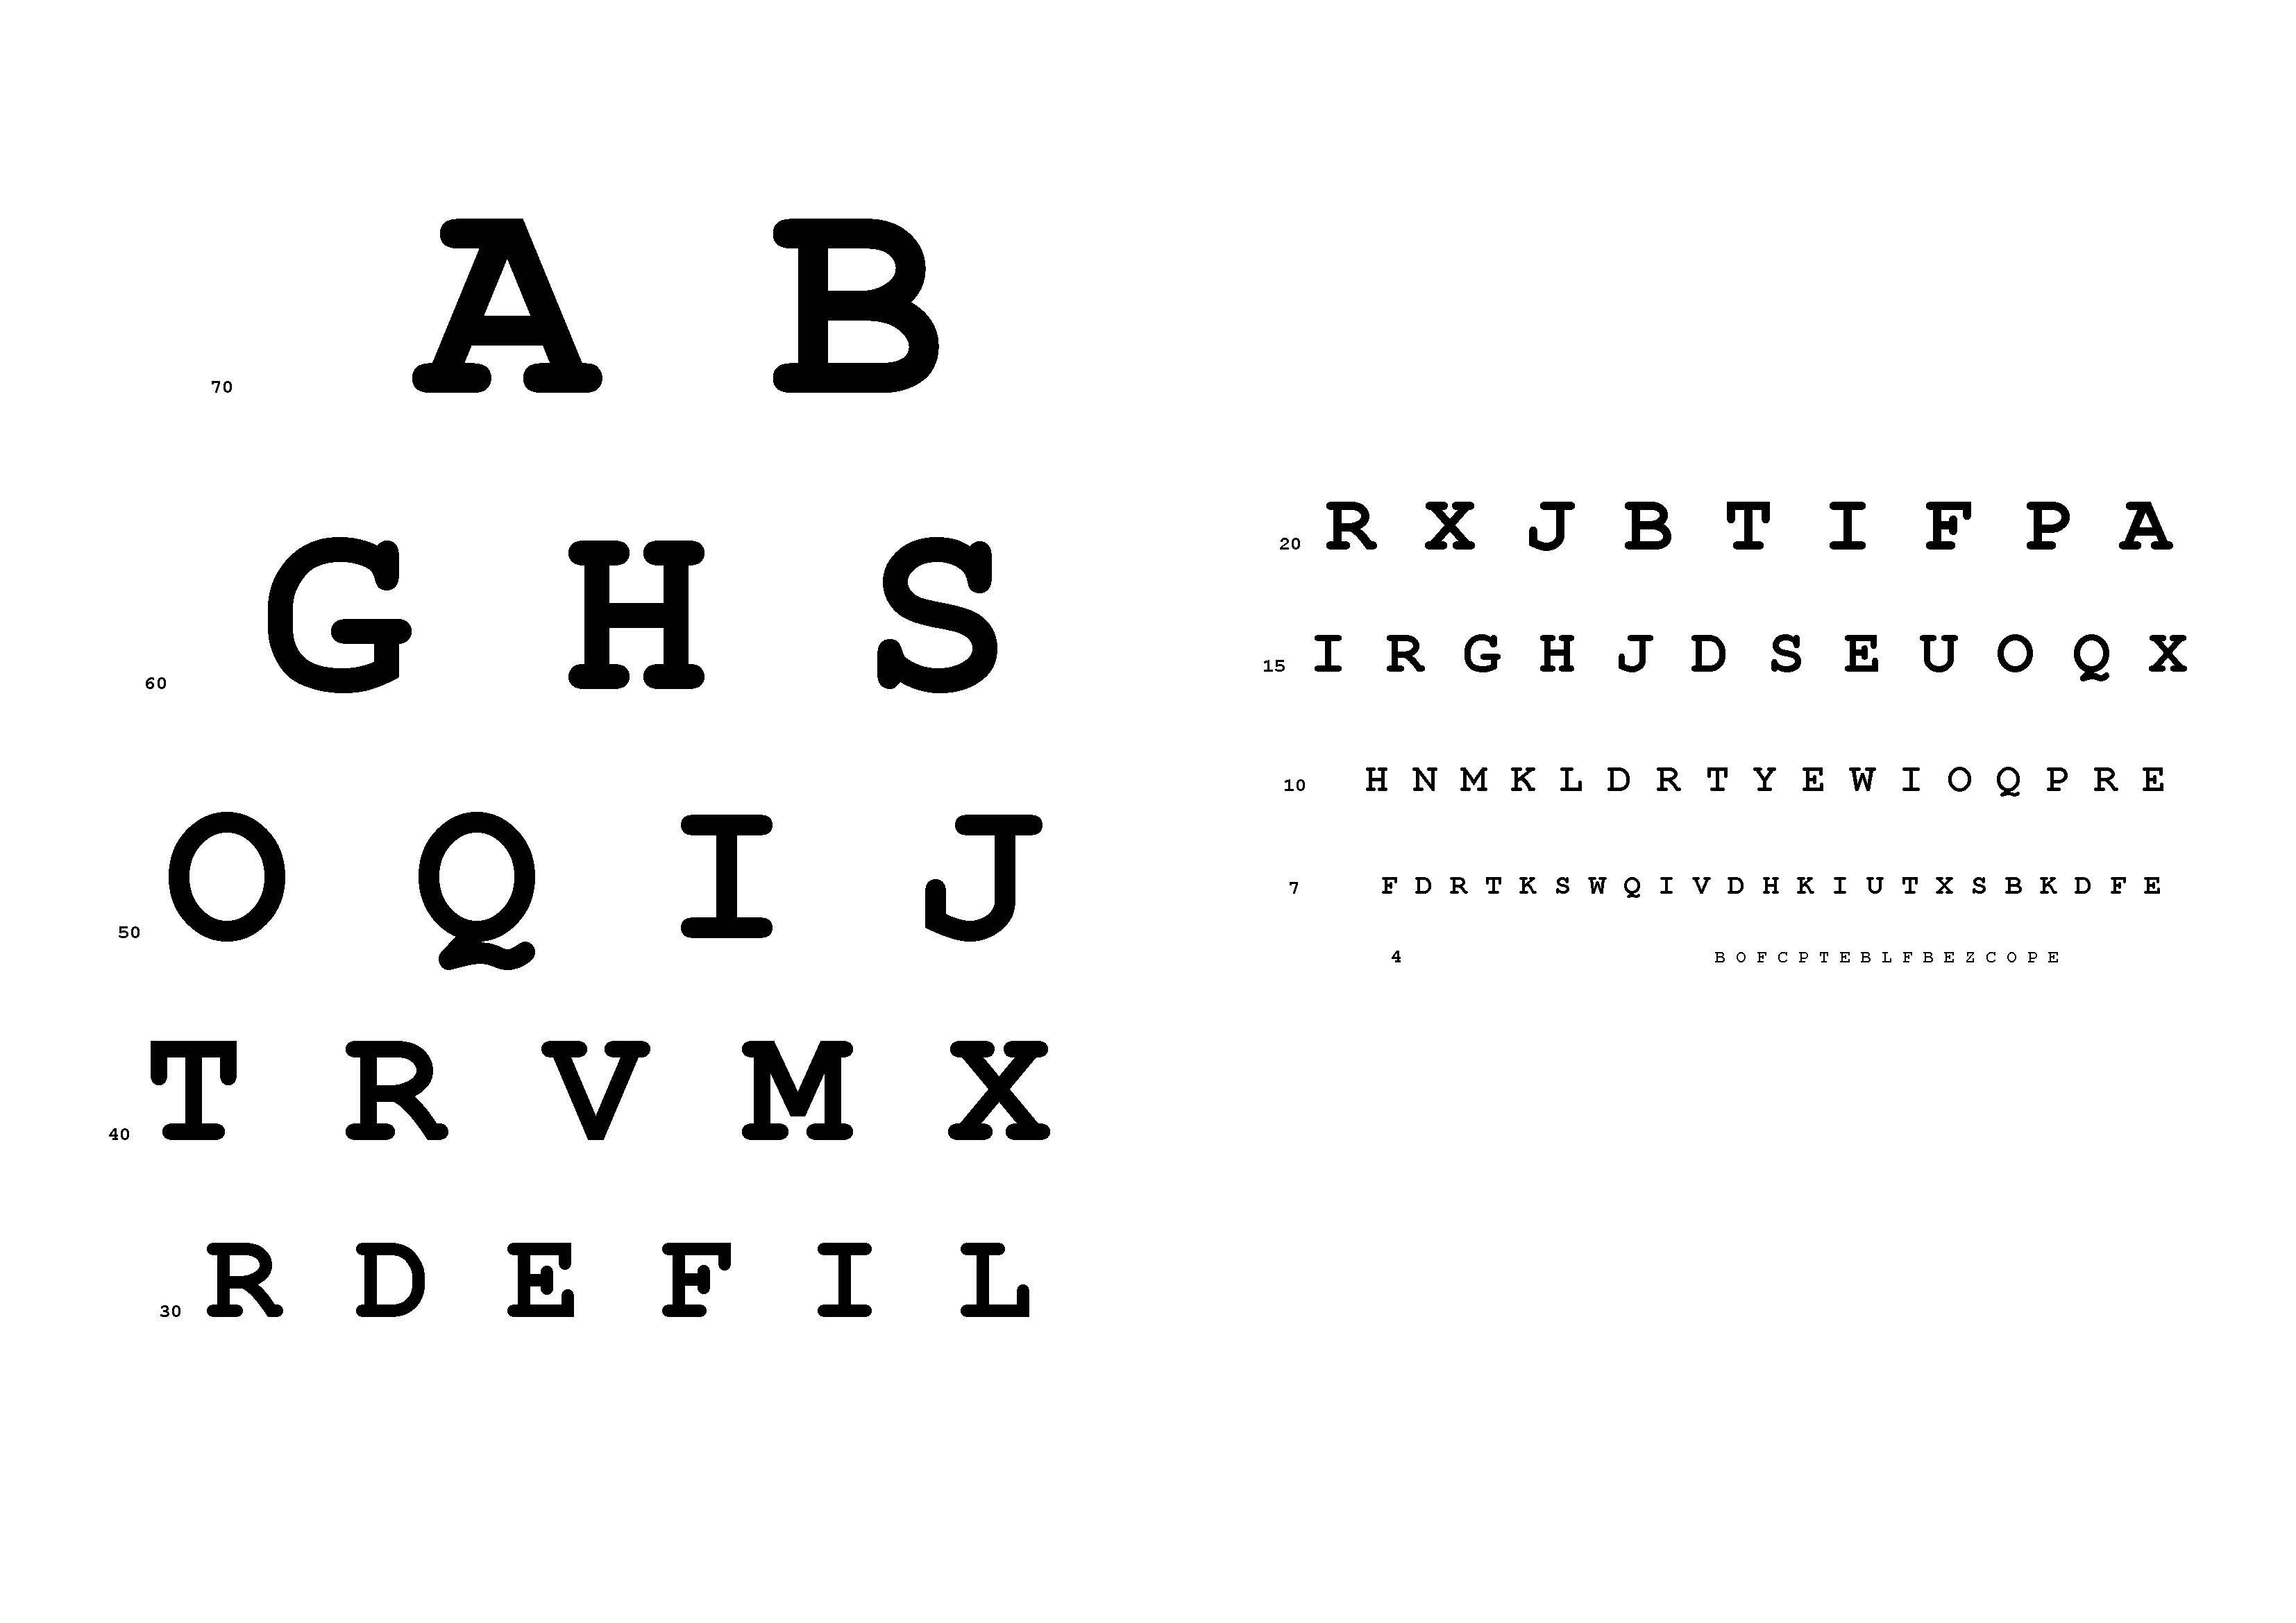 Snellen eye chart a3 how to use a snellen eye chart a3 size snellen eye chart a3 how to use a snellen eye chart a3 size download geenschuldenfo Images